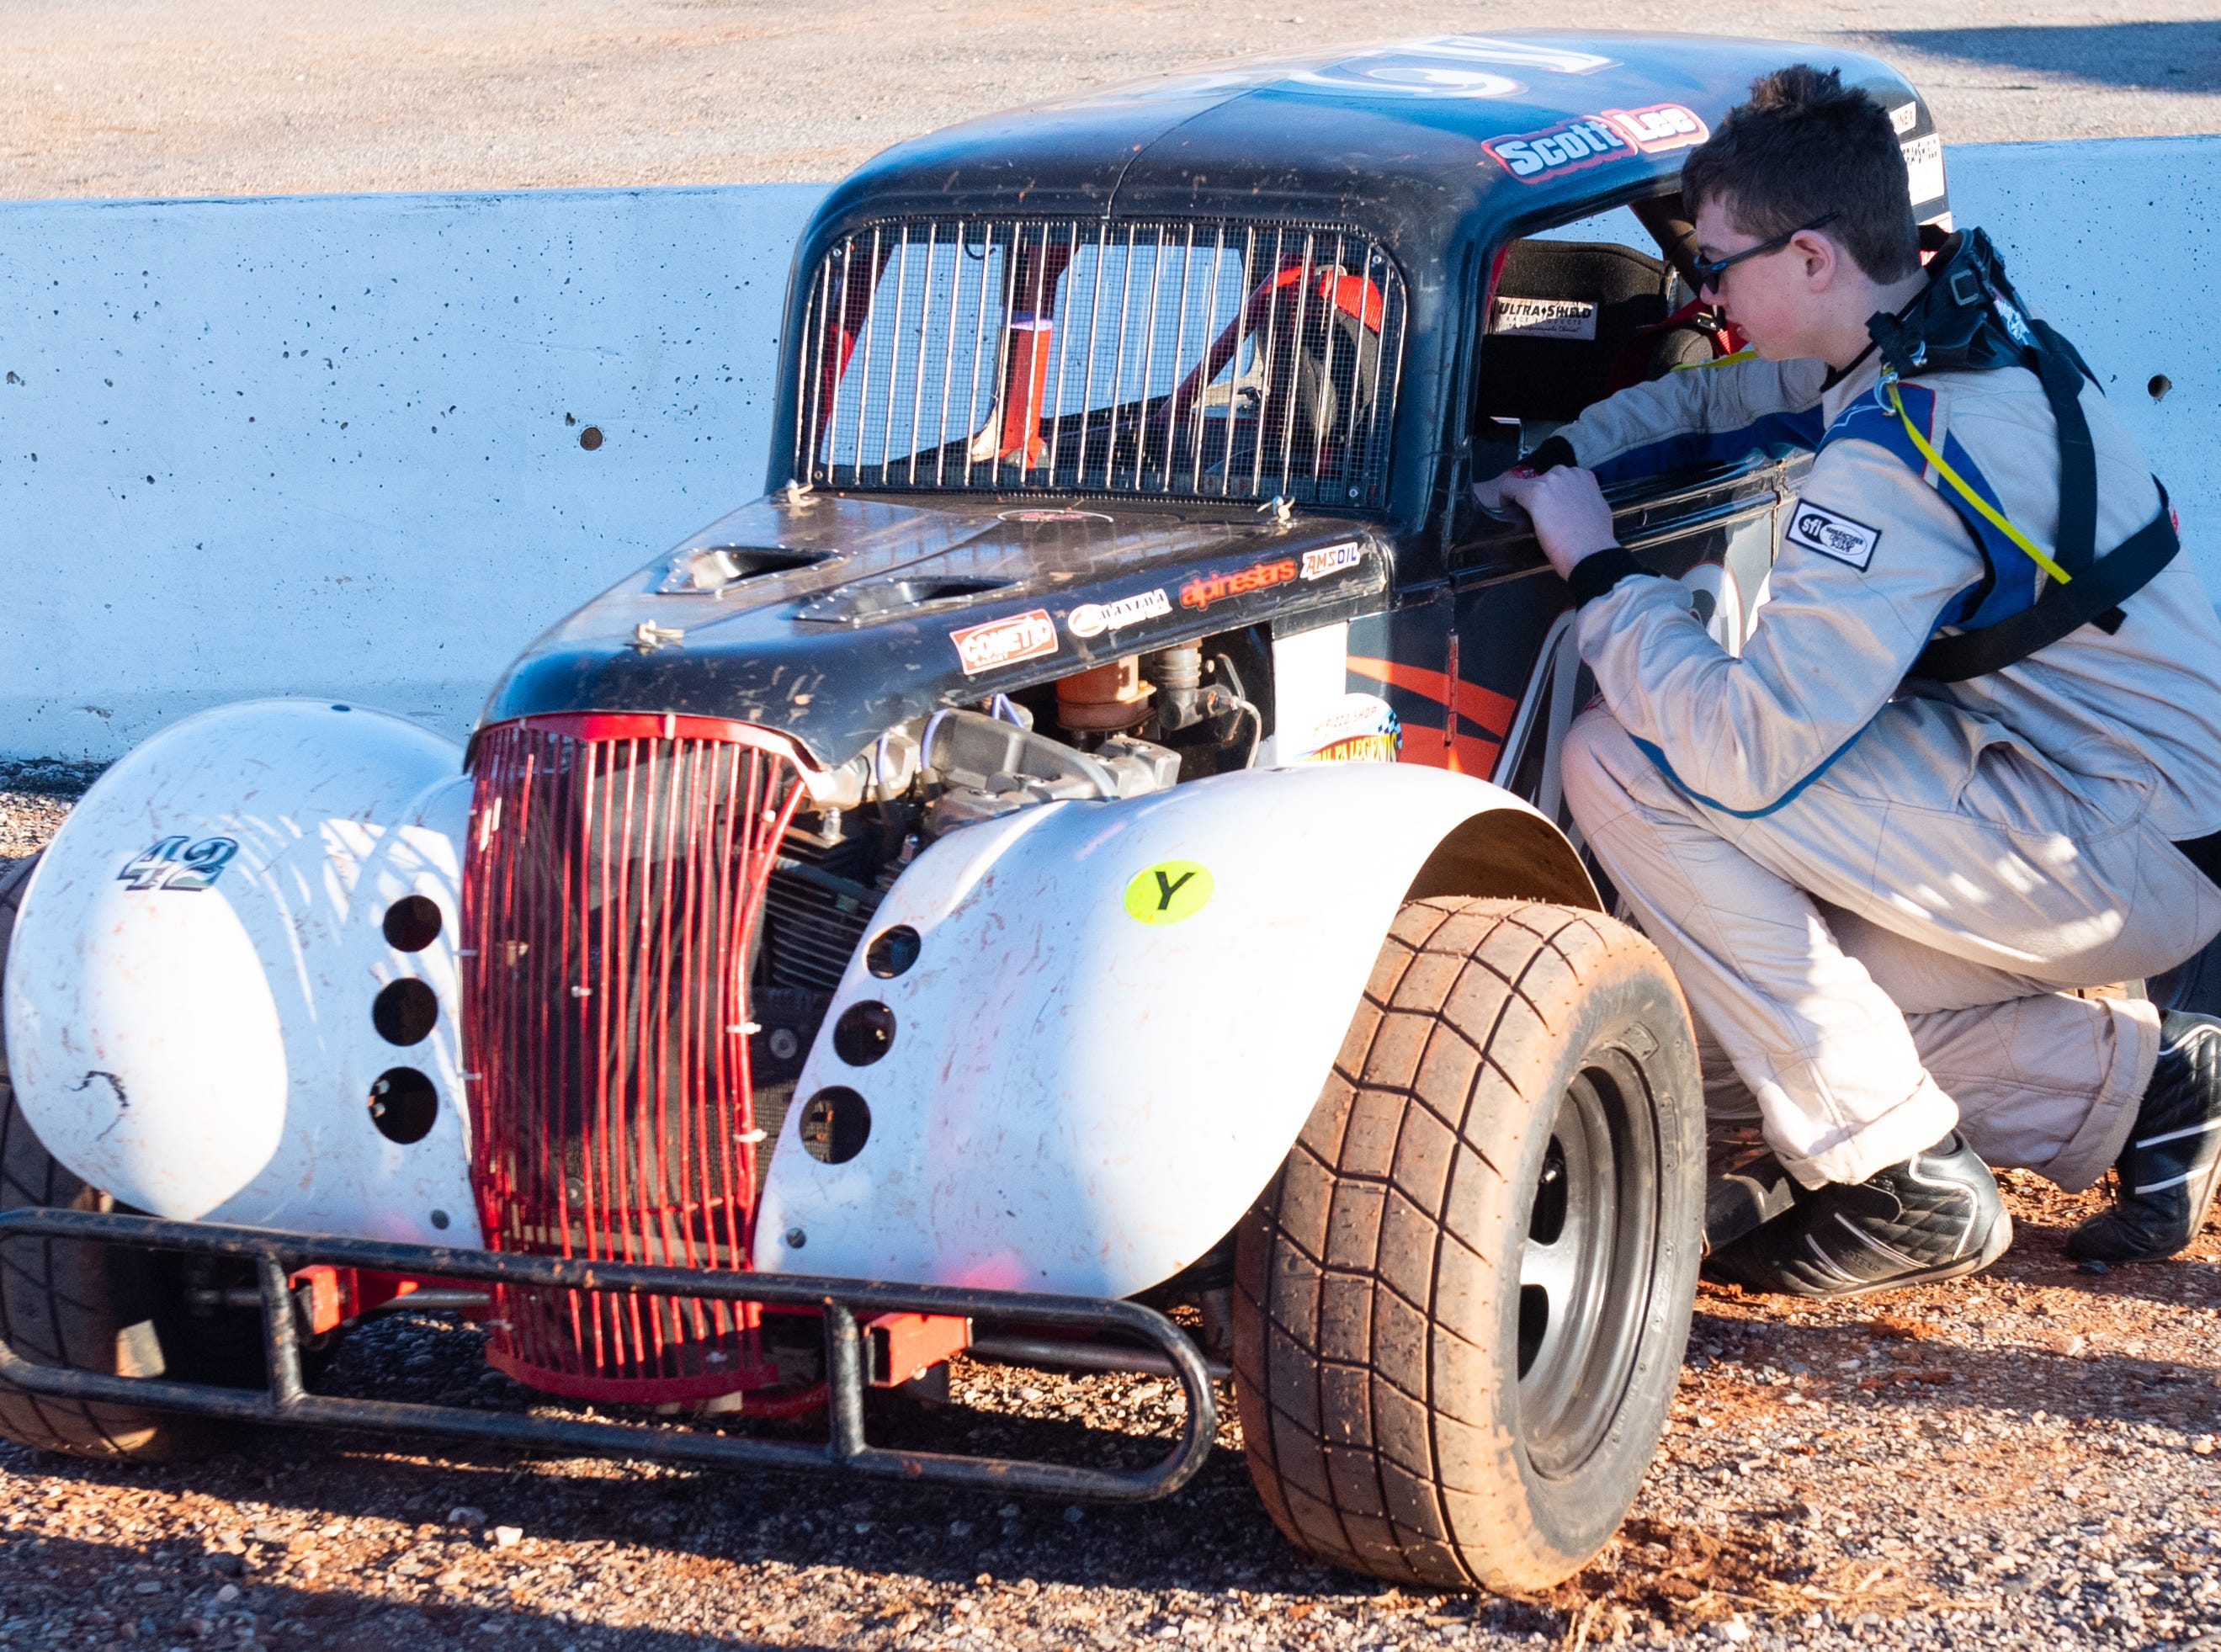 Scott Lee checks his vehicle before the race in the 2019 season opener at BAPS Motor Speedway, March 23, 2019.